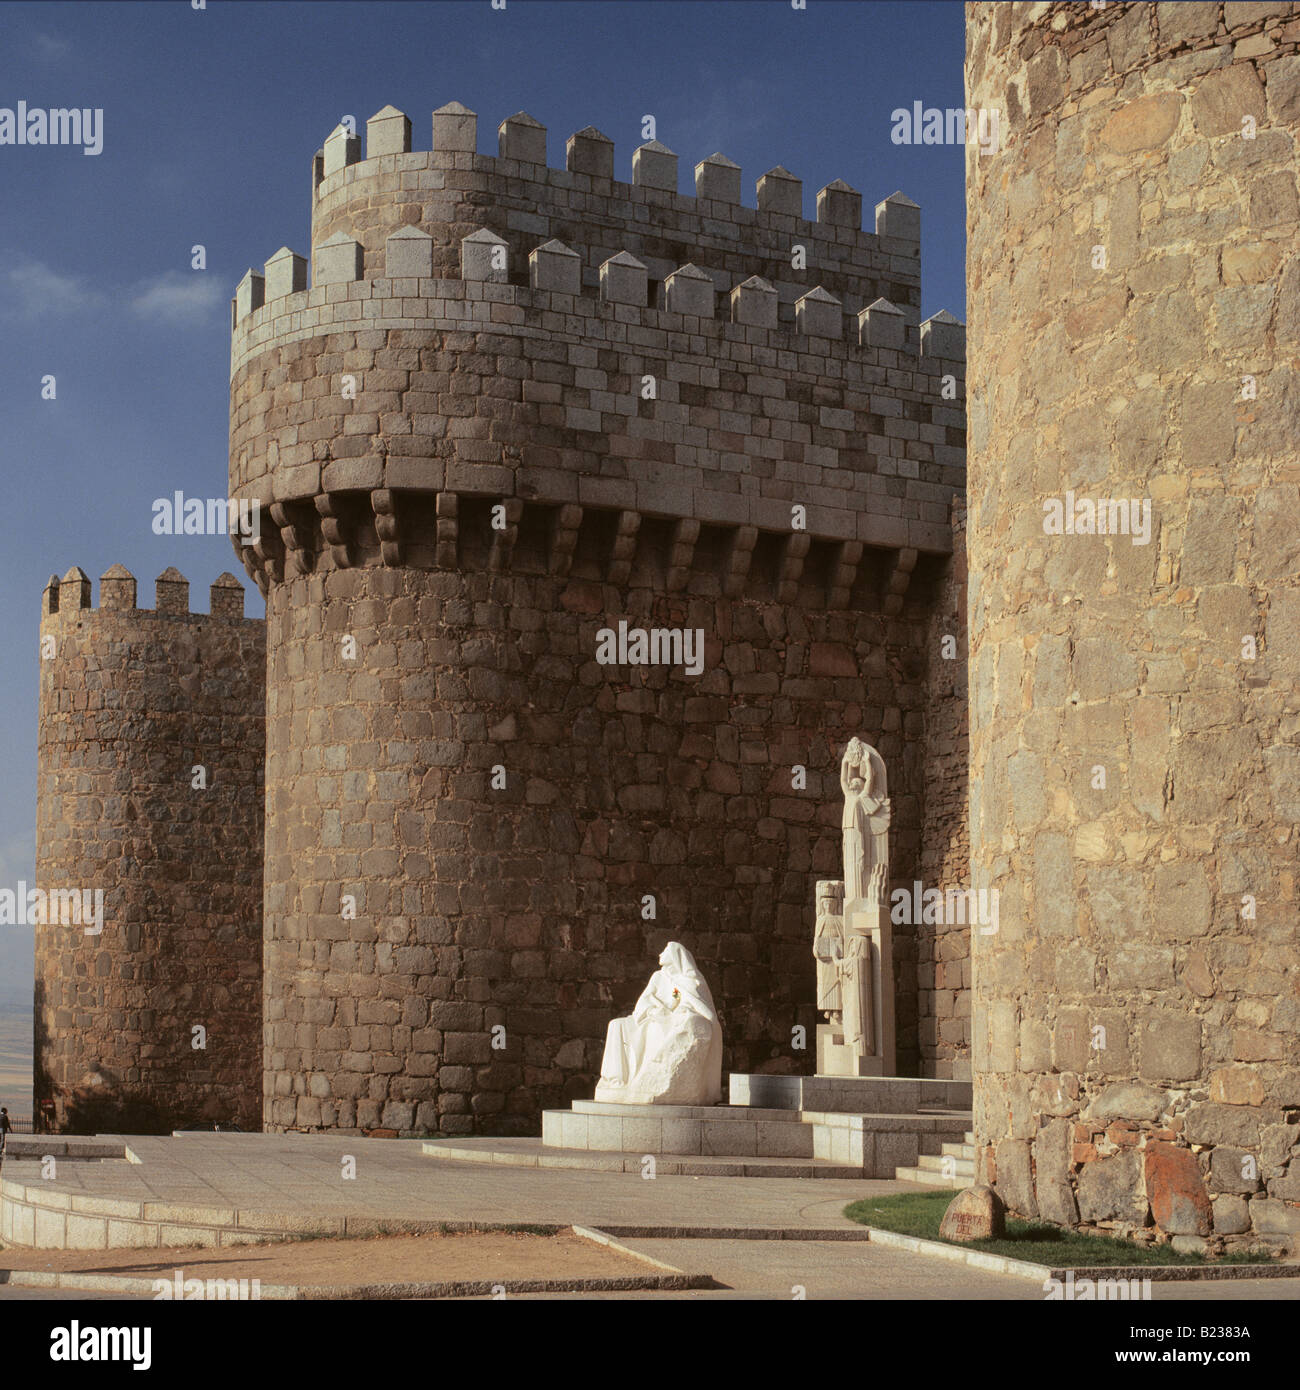 The Stonewalls Avila Spain - Stock Image